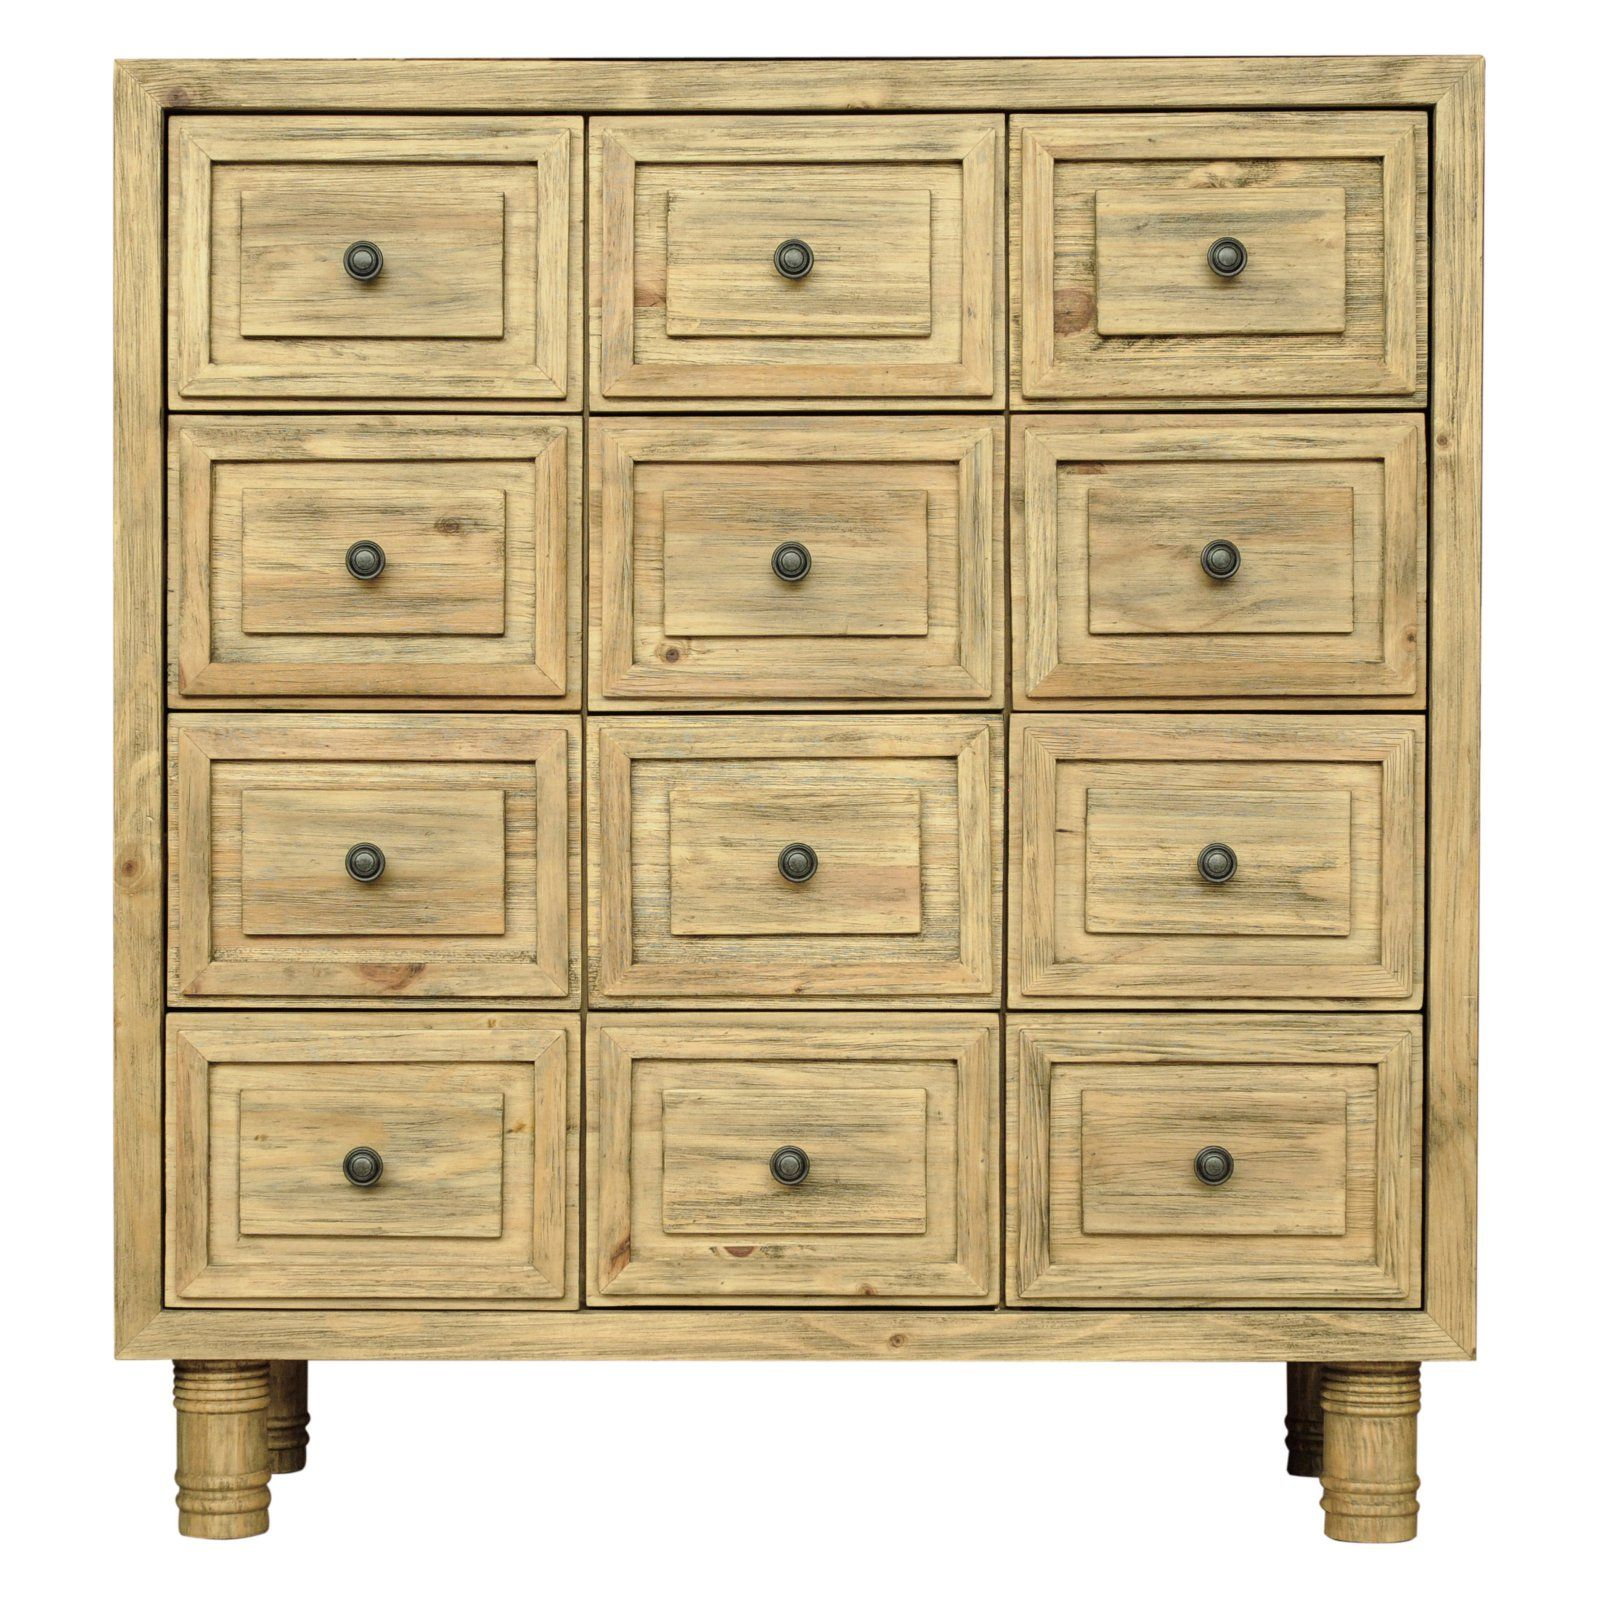 Cdi International Furniture Sand 12 Drawer Chest Chest Of